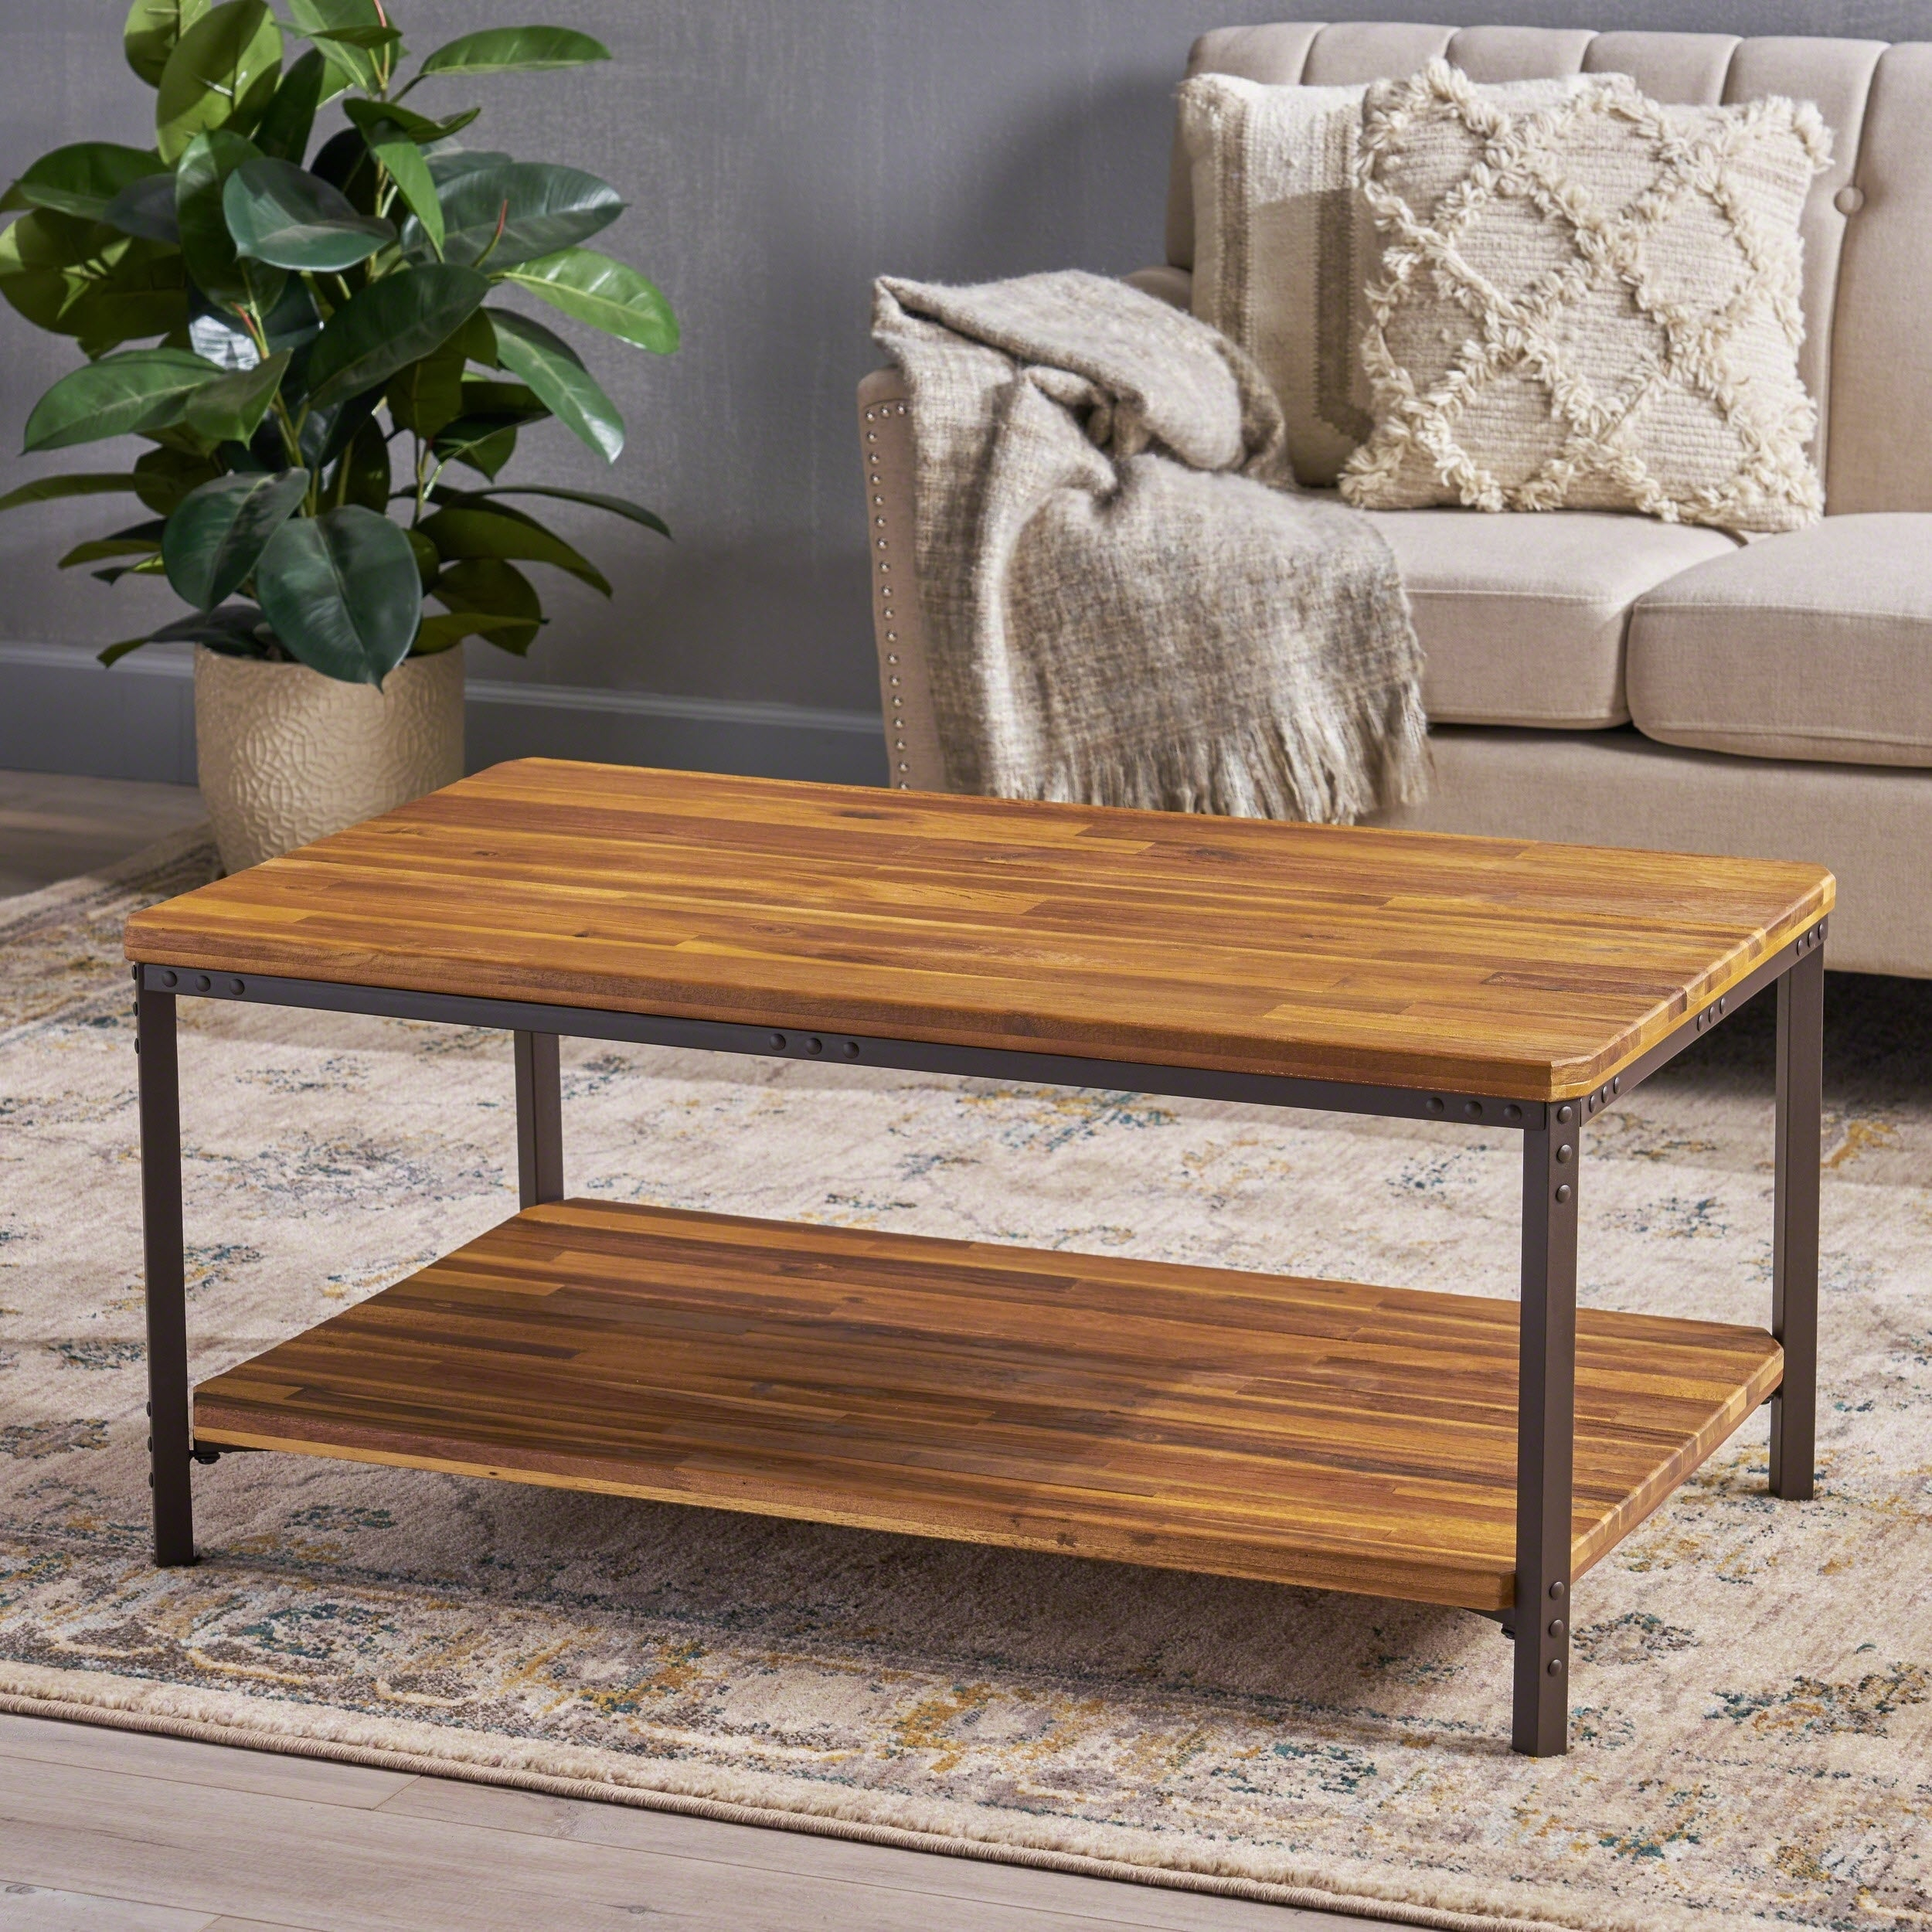 Ryder Sandblast Wood Finish Accentcoffee Table Christopher Knight Home within proportions 2500 X 2500